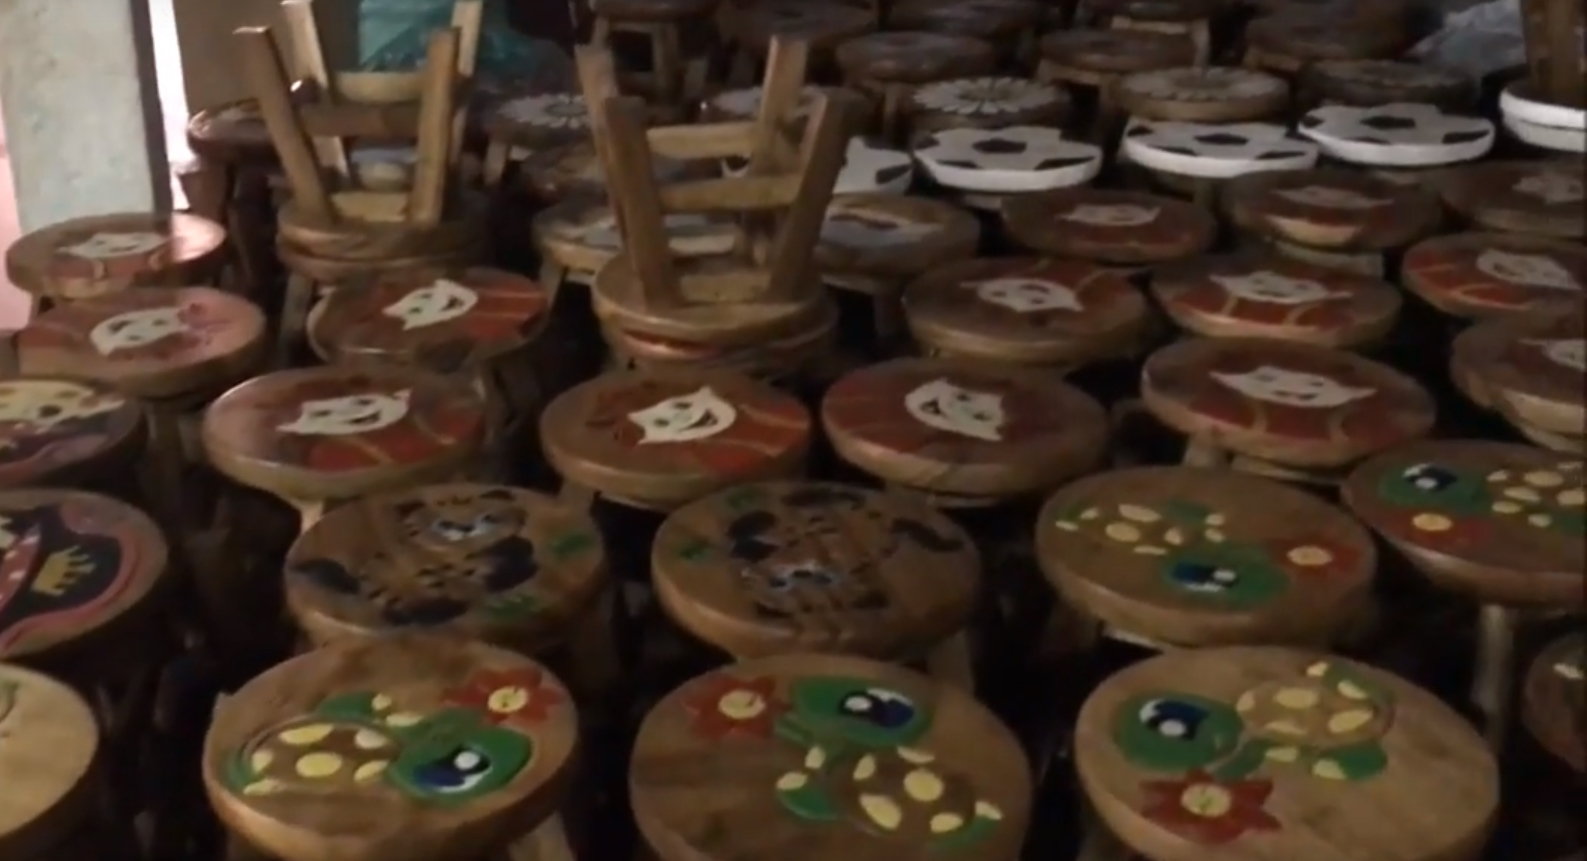 Childrens Wooden Stools Wholesale Supplier Cleaning Prior to Export Delivery